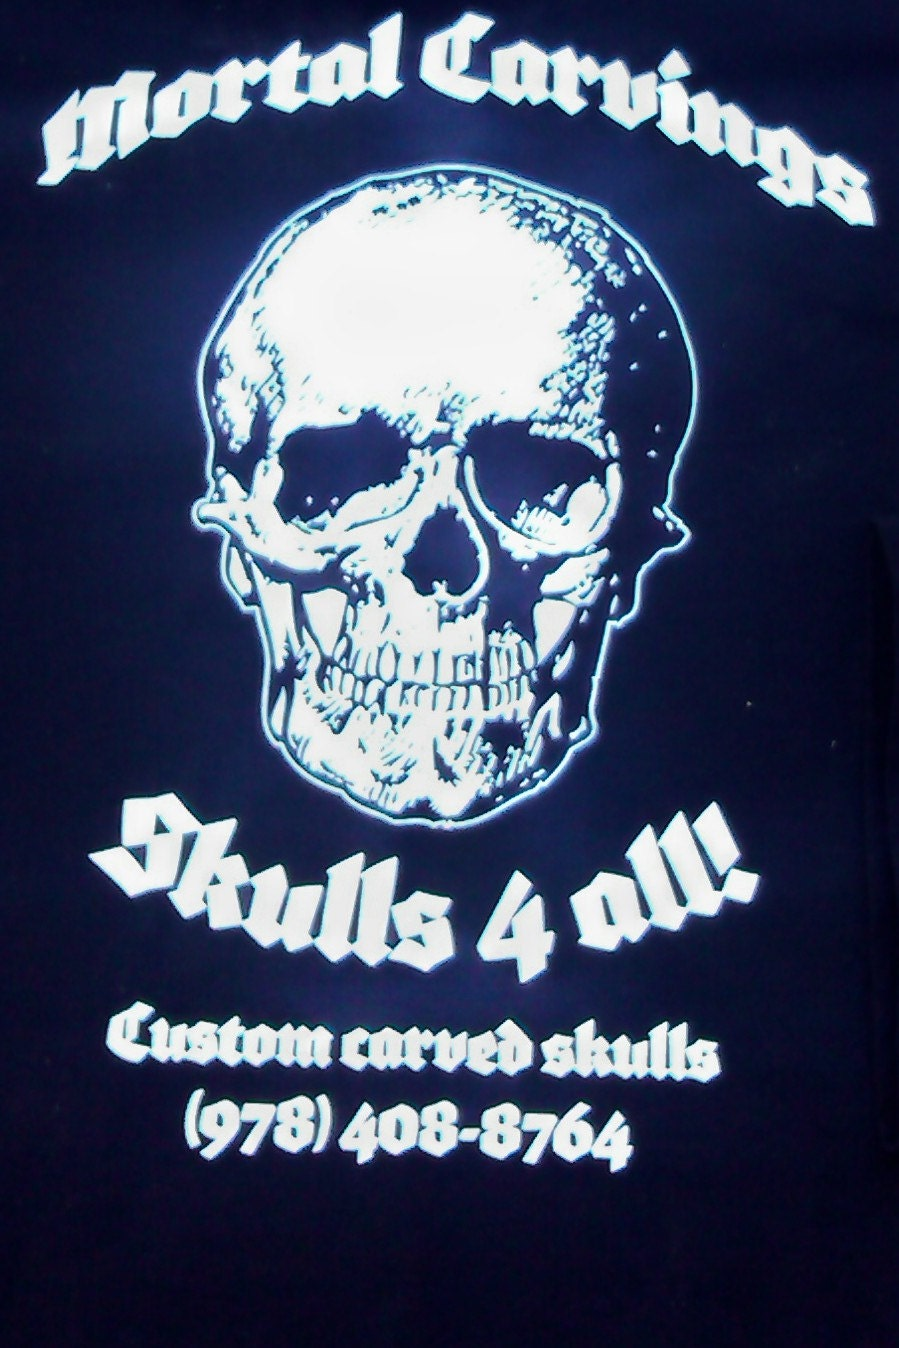 Mortal Carvings by Skulls4All on Etsy